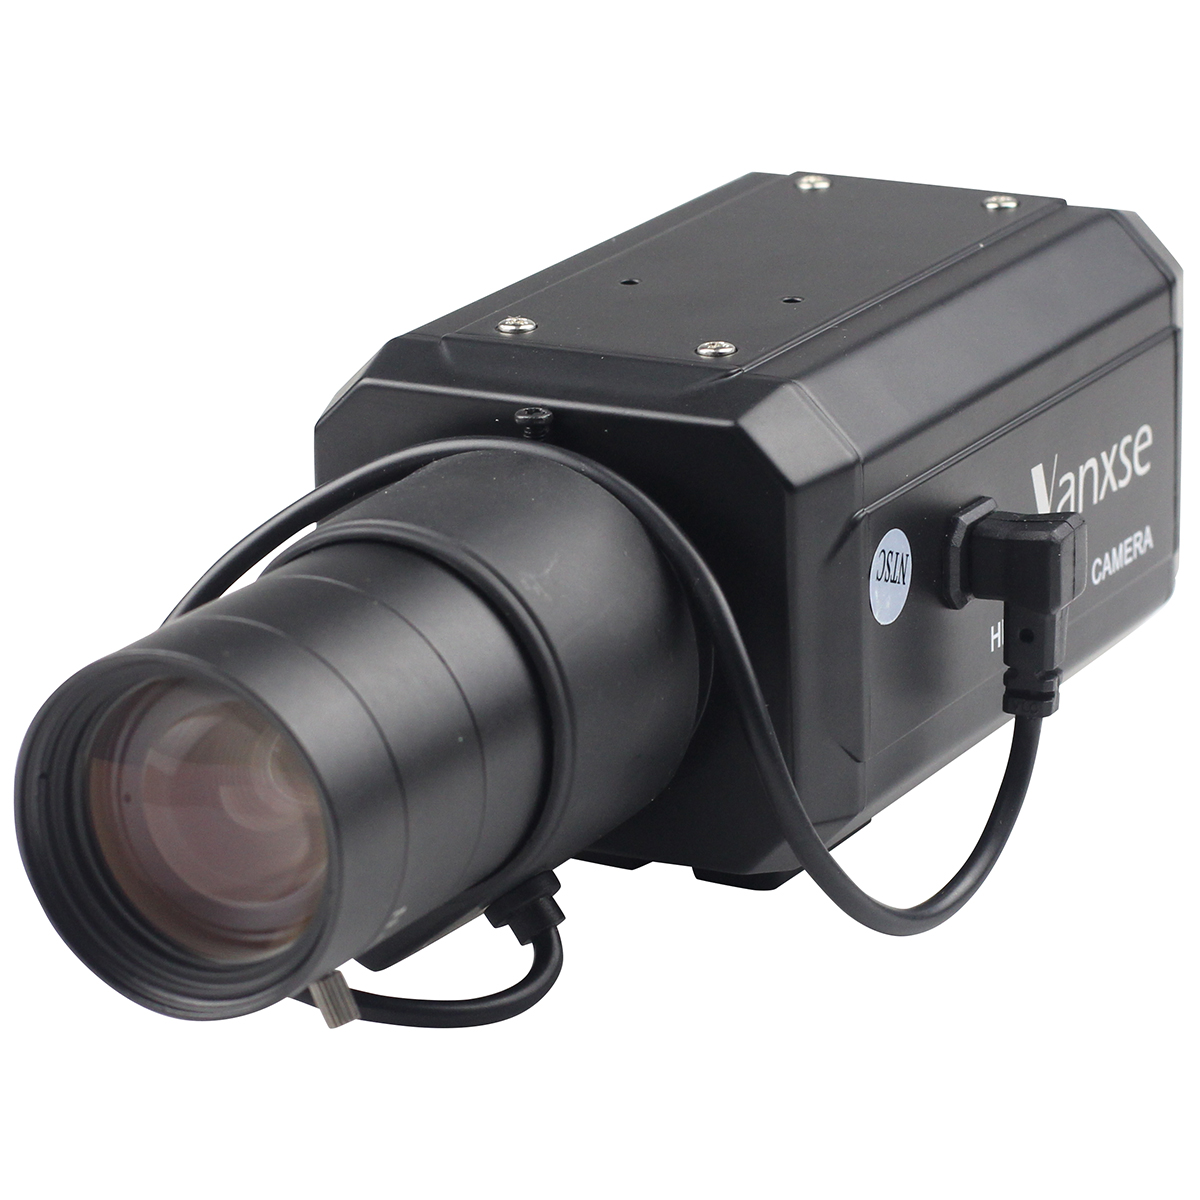 Vanxse CCTV 6-60mm Auto IRIS Varifocal Zoom Lens 1/3 SONY Effio CCD 1000TVL/960H CCTV Security BOX Camera